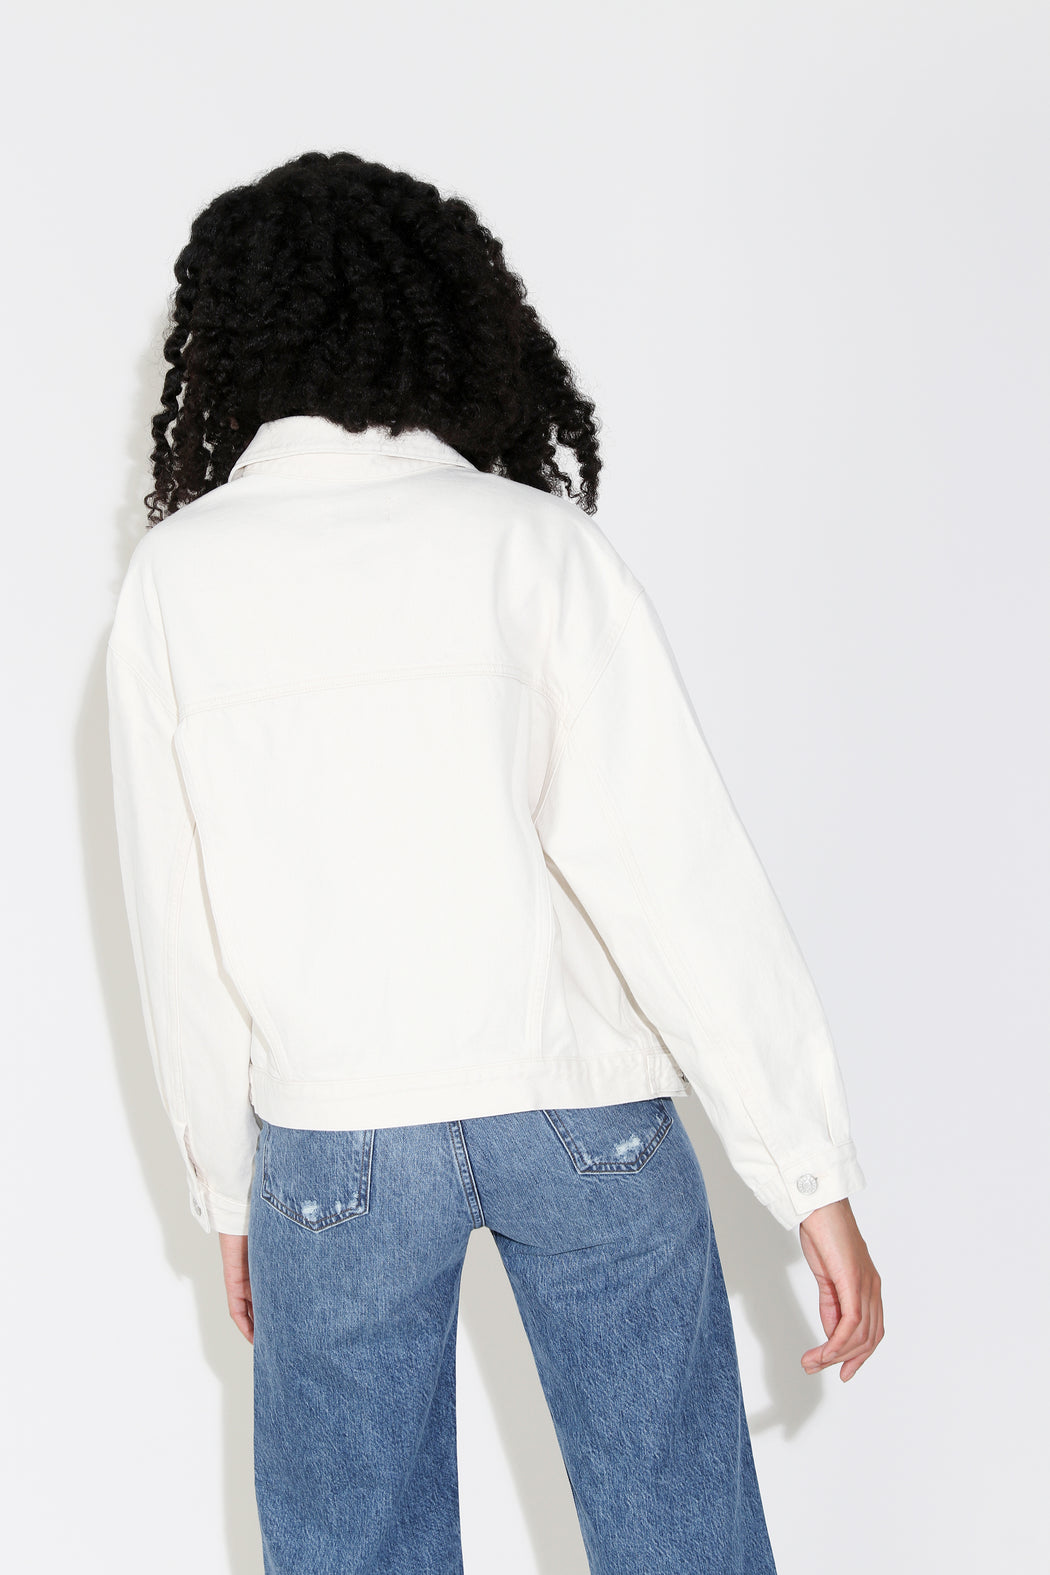 Agolde Charli Denim Jacket in Paper